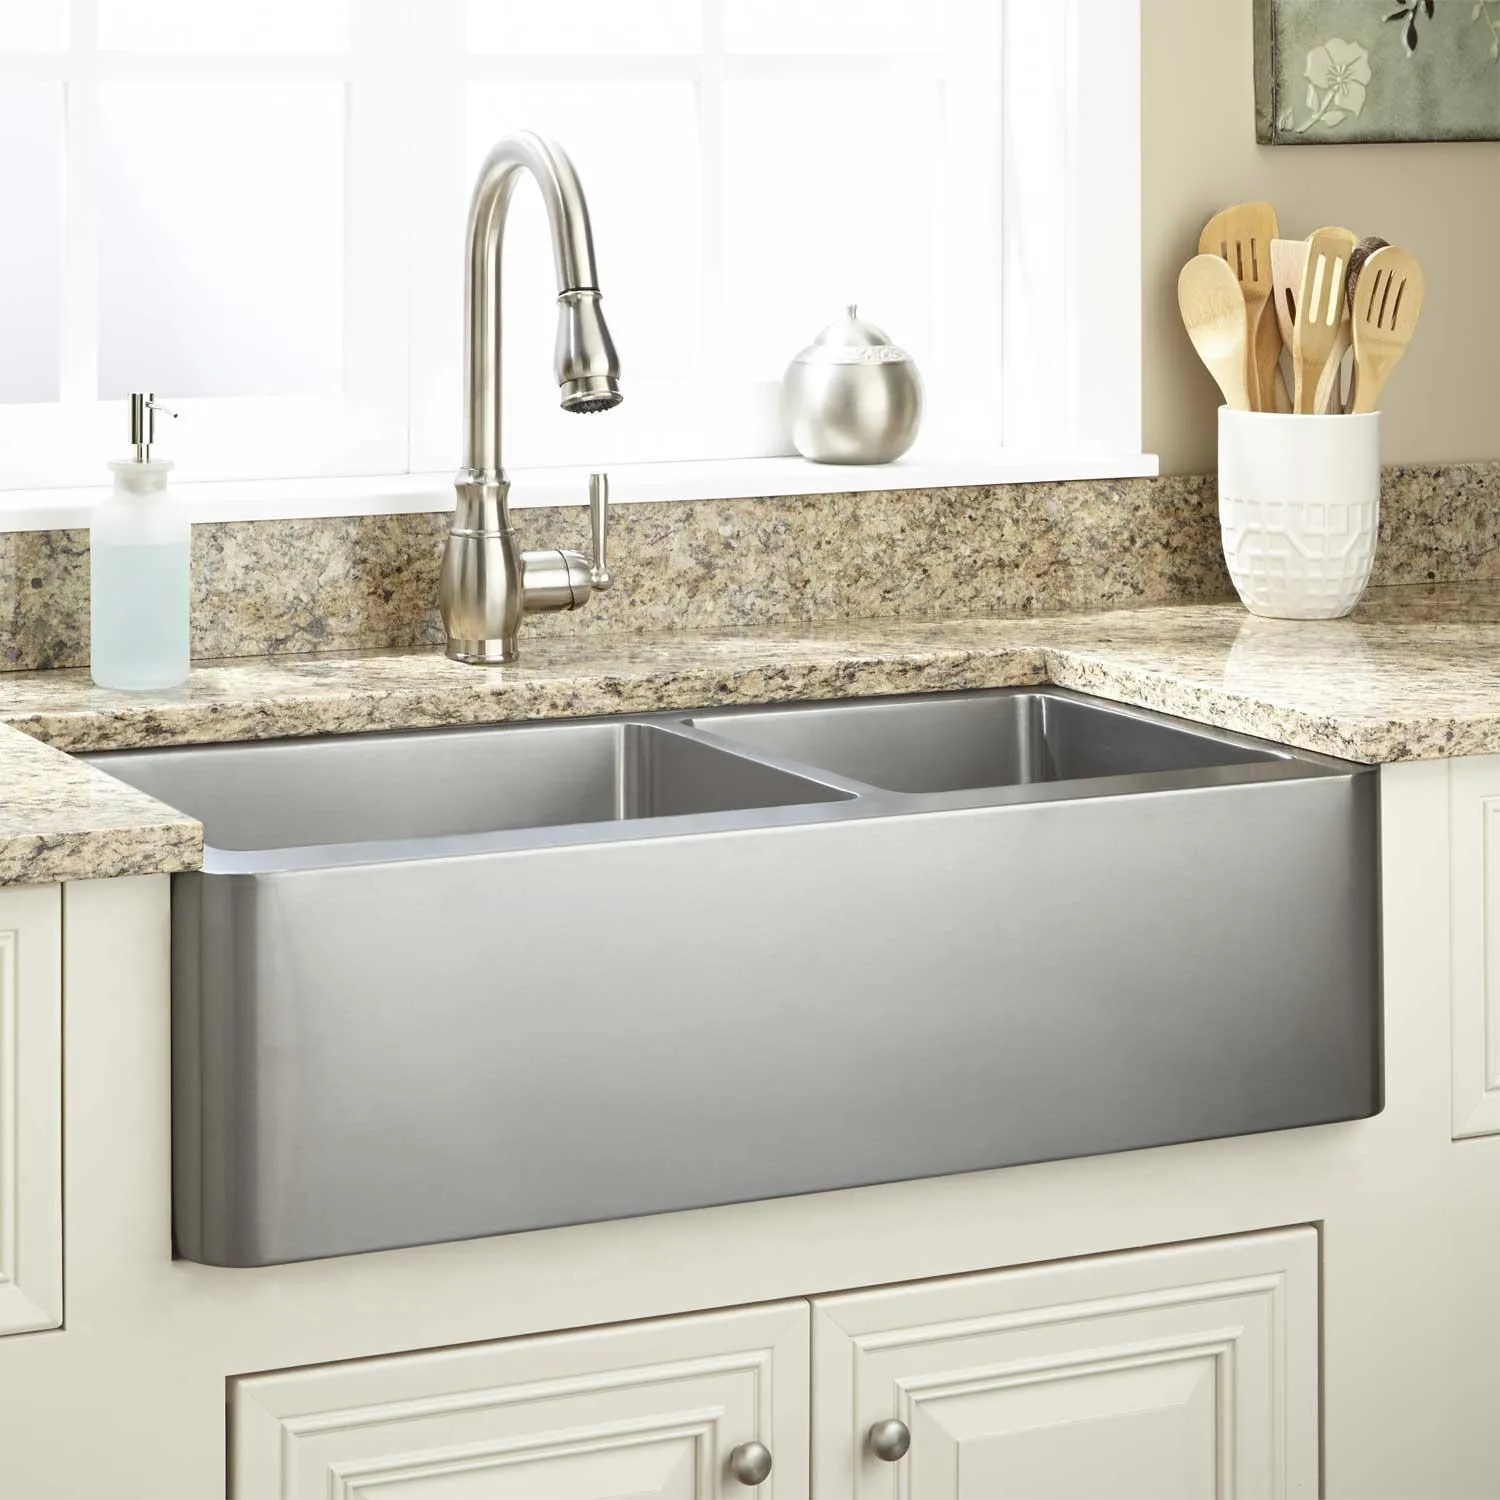 Durable Stainless Steel Sink Signature Hardware